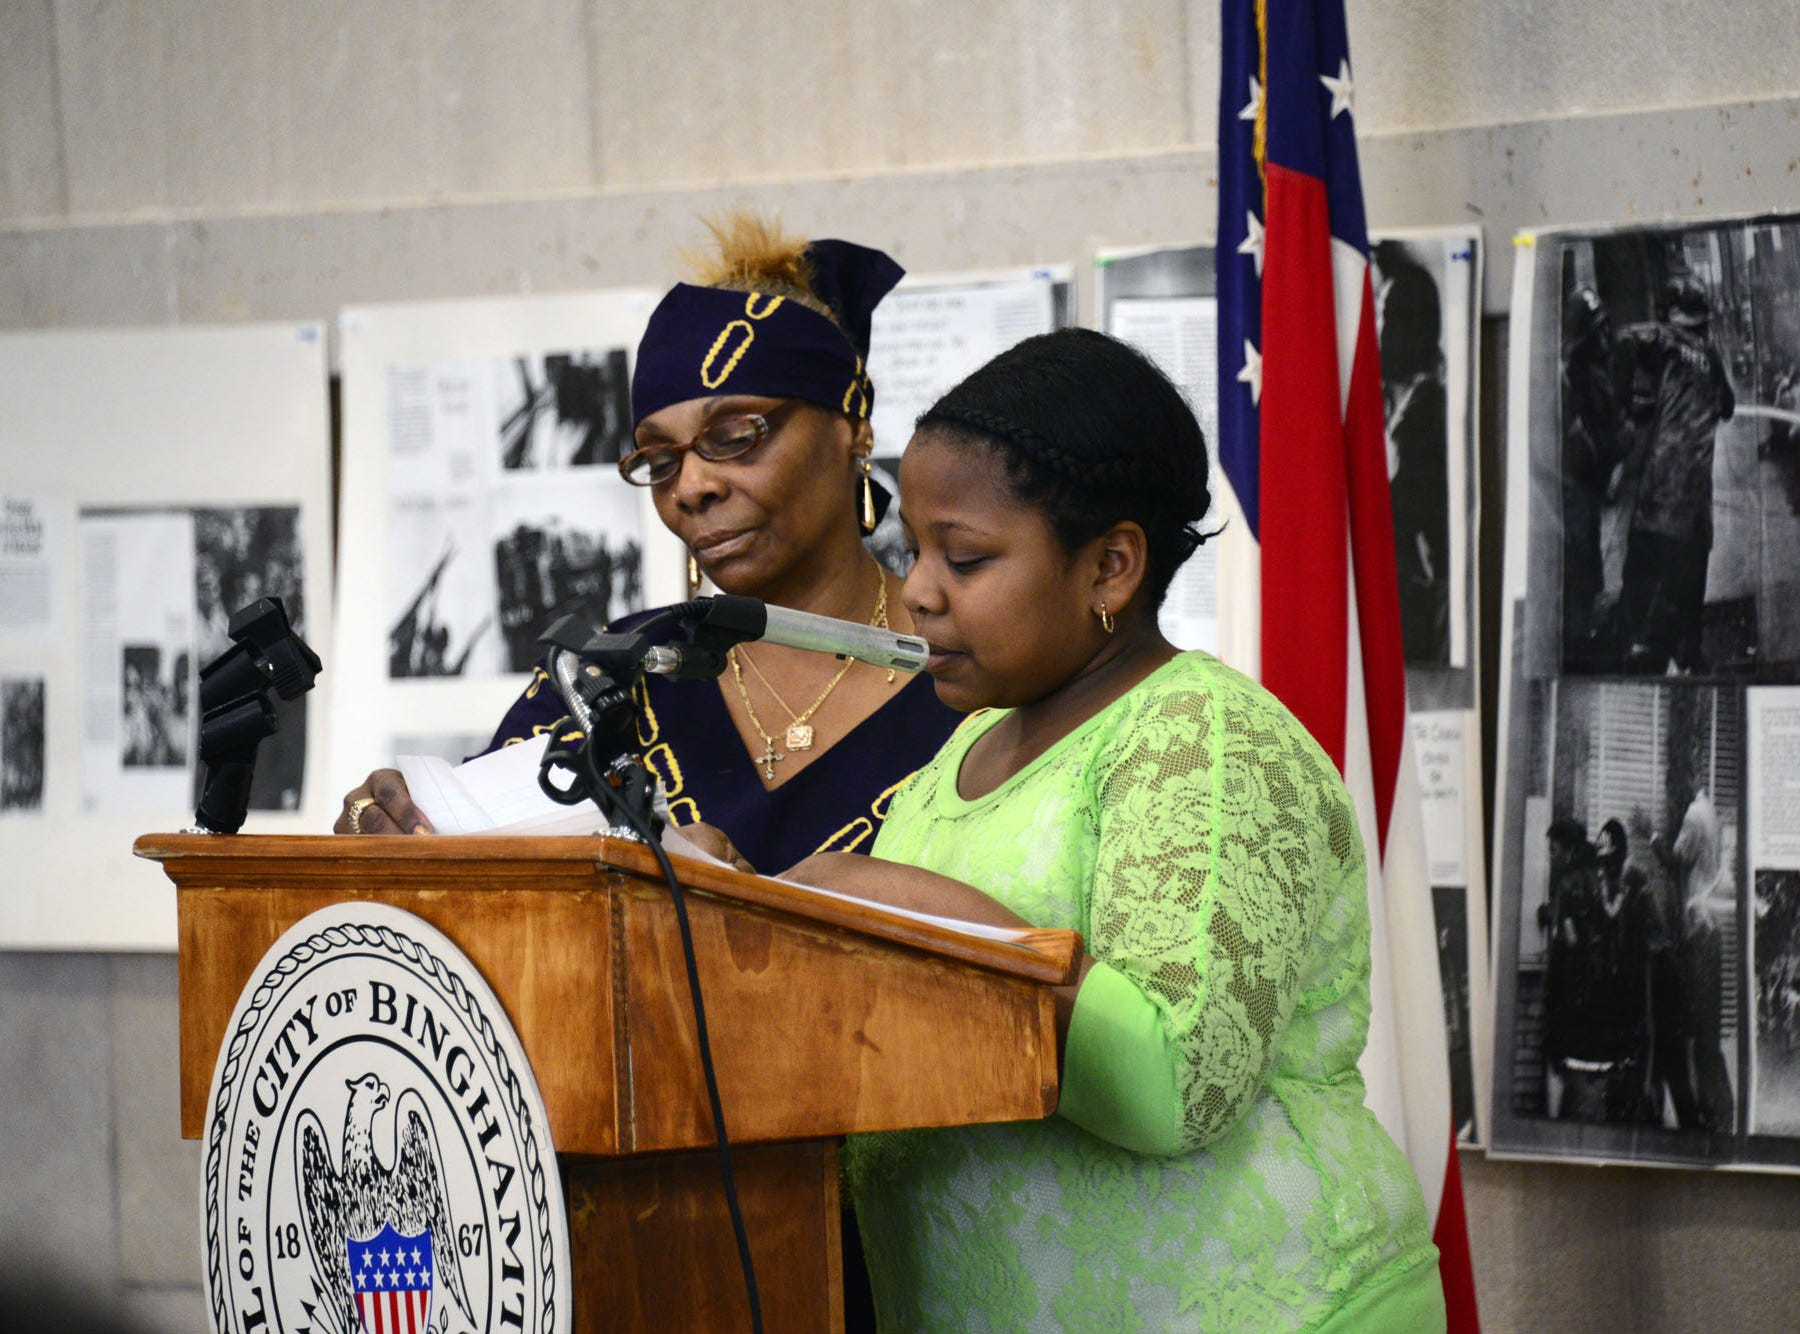 """2013: Tania Cureton, a 7th grader from Jenny F. Snap middle school reads her essay """"Through the eyes of a child"""" during a Martin Luther King ceremony hosted by the NAACP at Binghamton's City Hall on Monday, Jan. 21, 2013."""